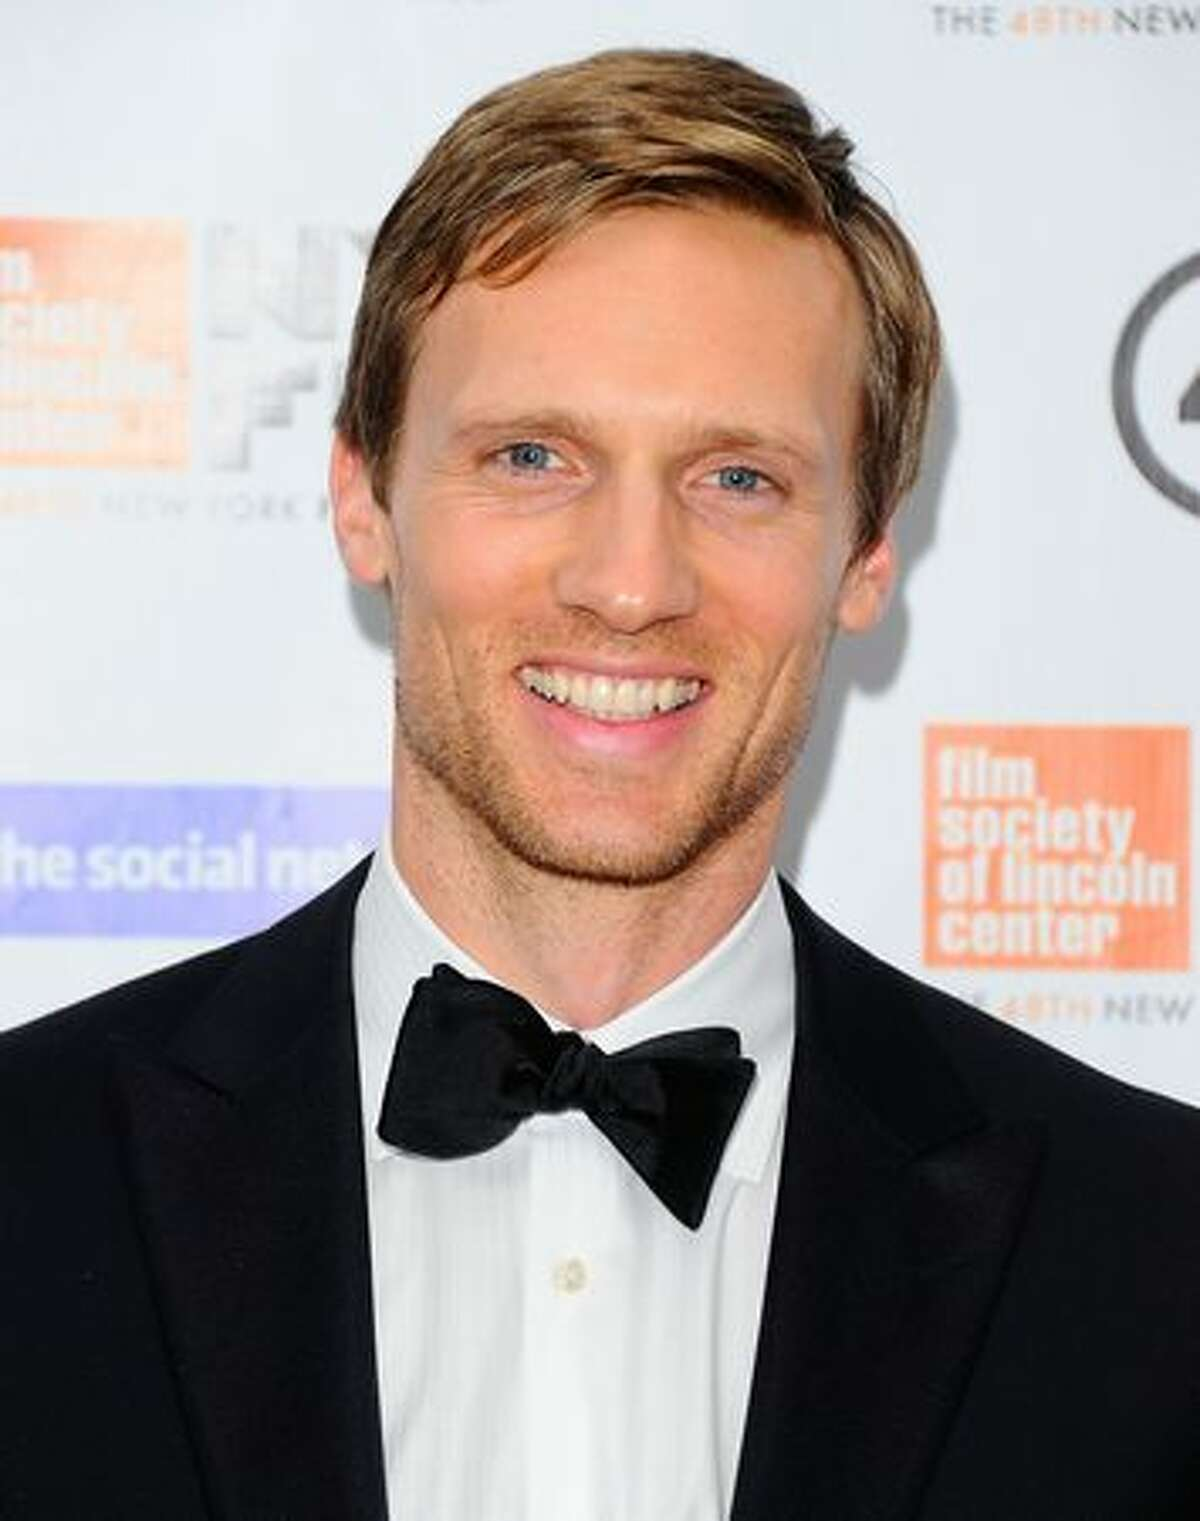 Actor Teddy Sears attends the premiere of